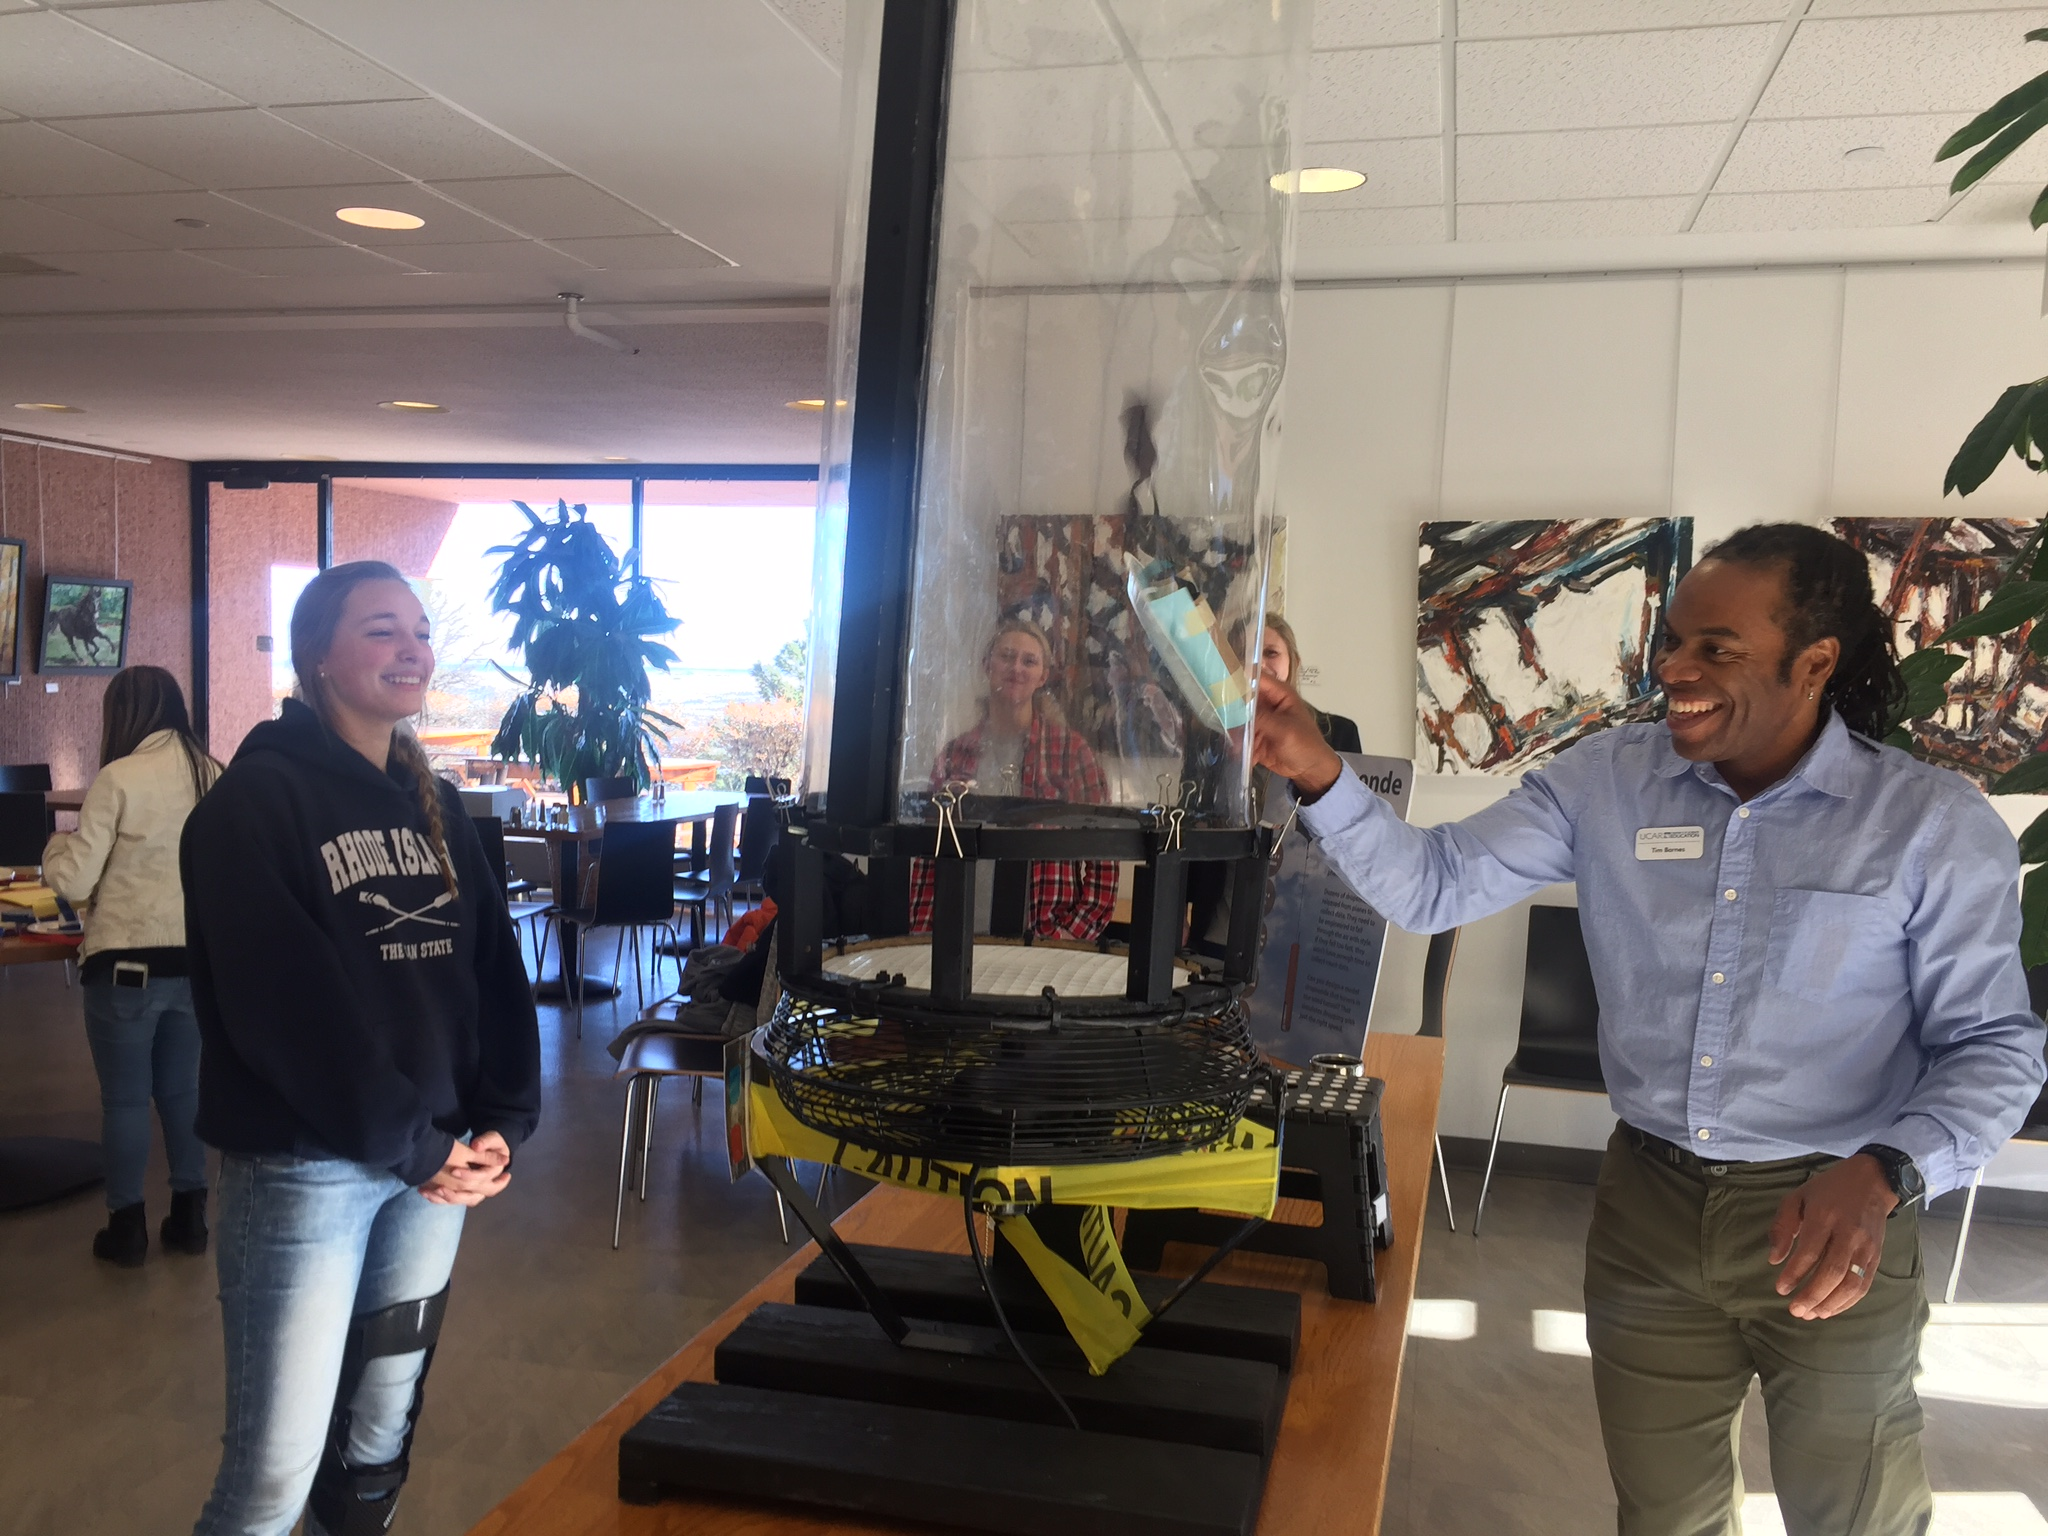 Students were able to create their own dropsondes to drop into a wind tunnel at the National Center for Atmospheric Research (NCAR) in Boulder